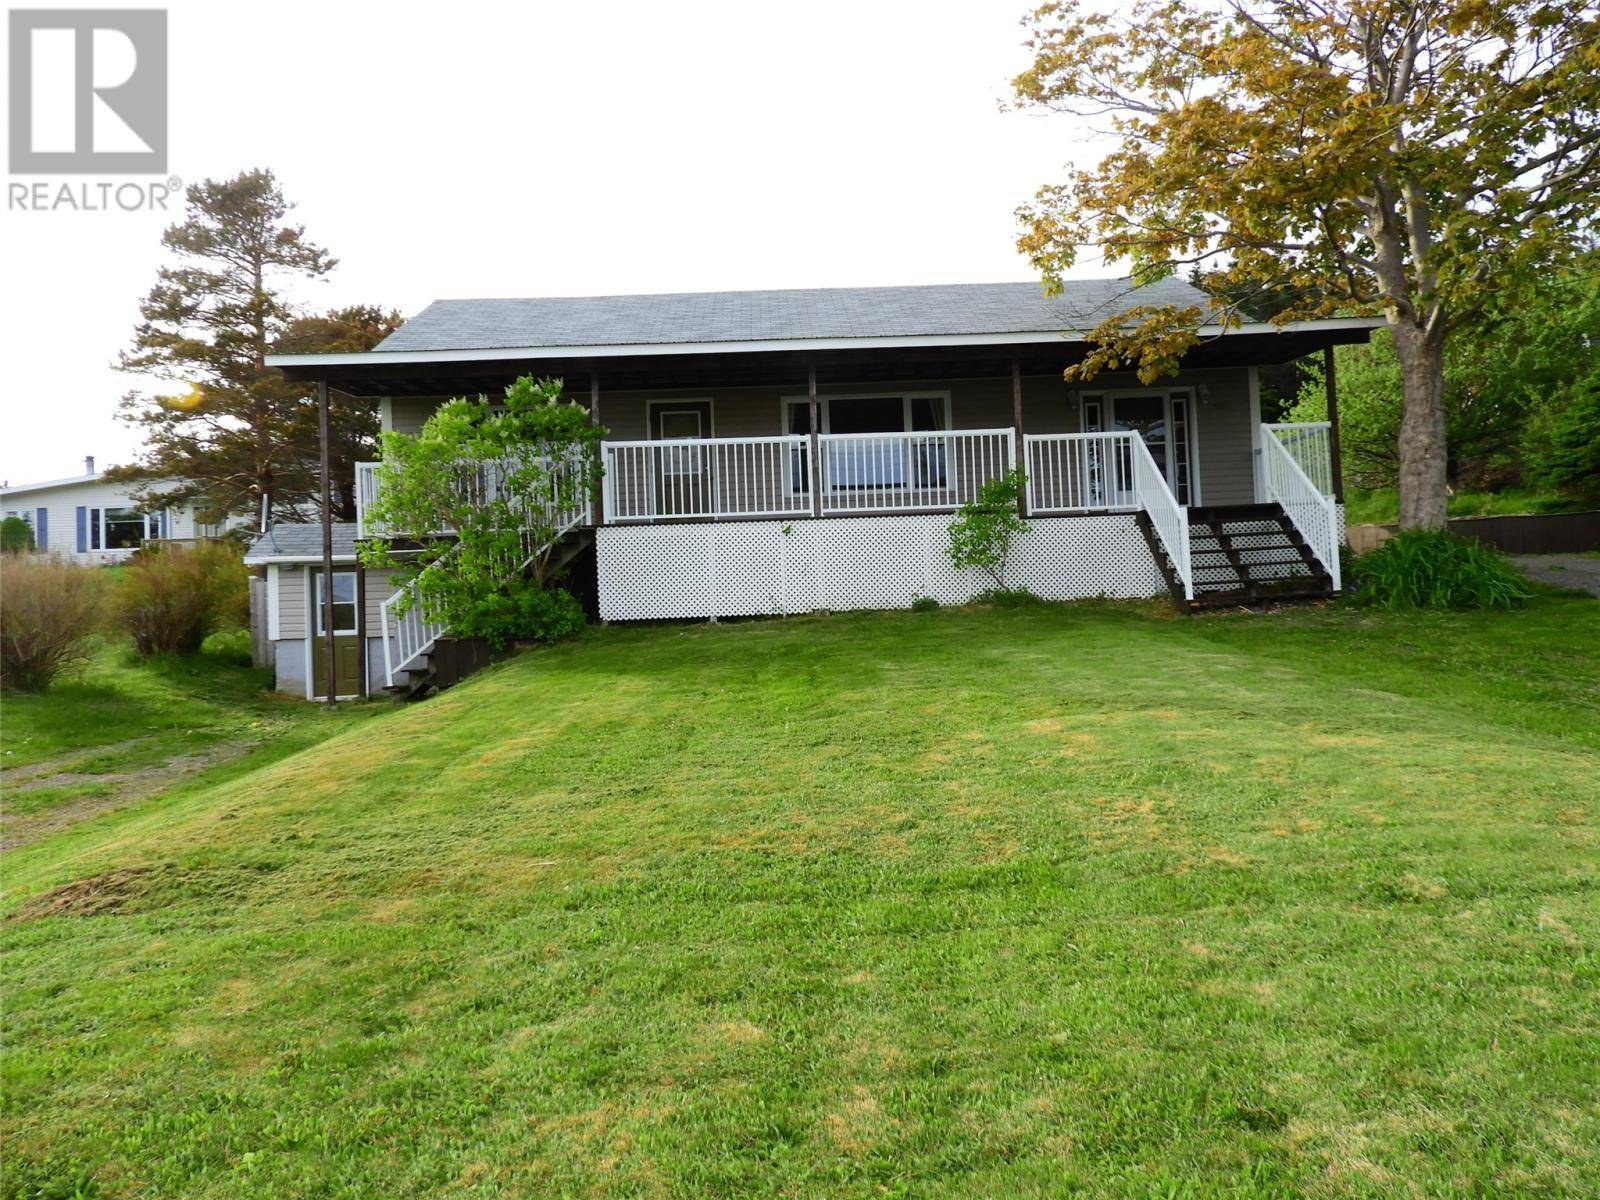 House for sale at 90 Main Rd Lewins Cove Newfoundland - MLS: 1198300